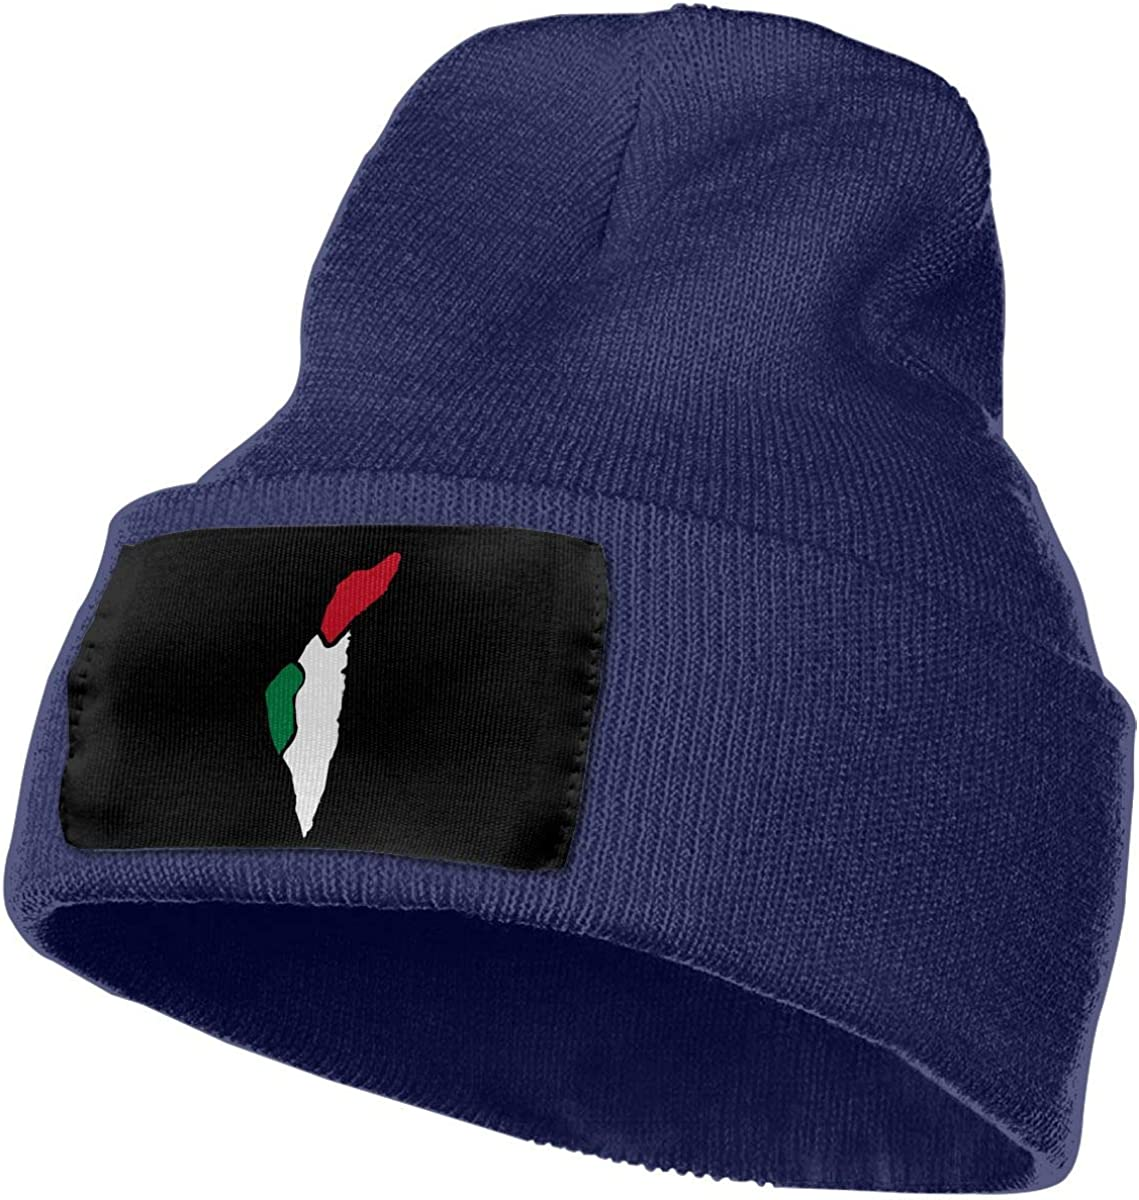 TAOMAP89 Summer Flag Map of Palestine Women and Men Skull Caps Winter Warm Stretchy Knit Beanie Hats